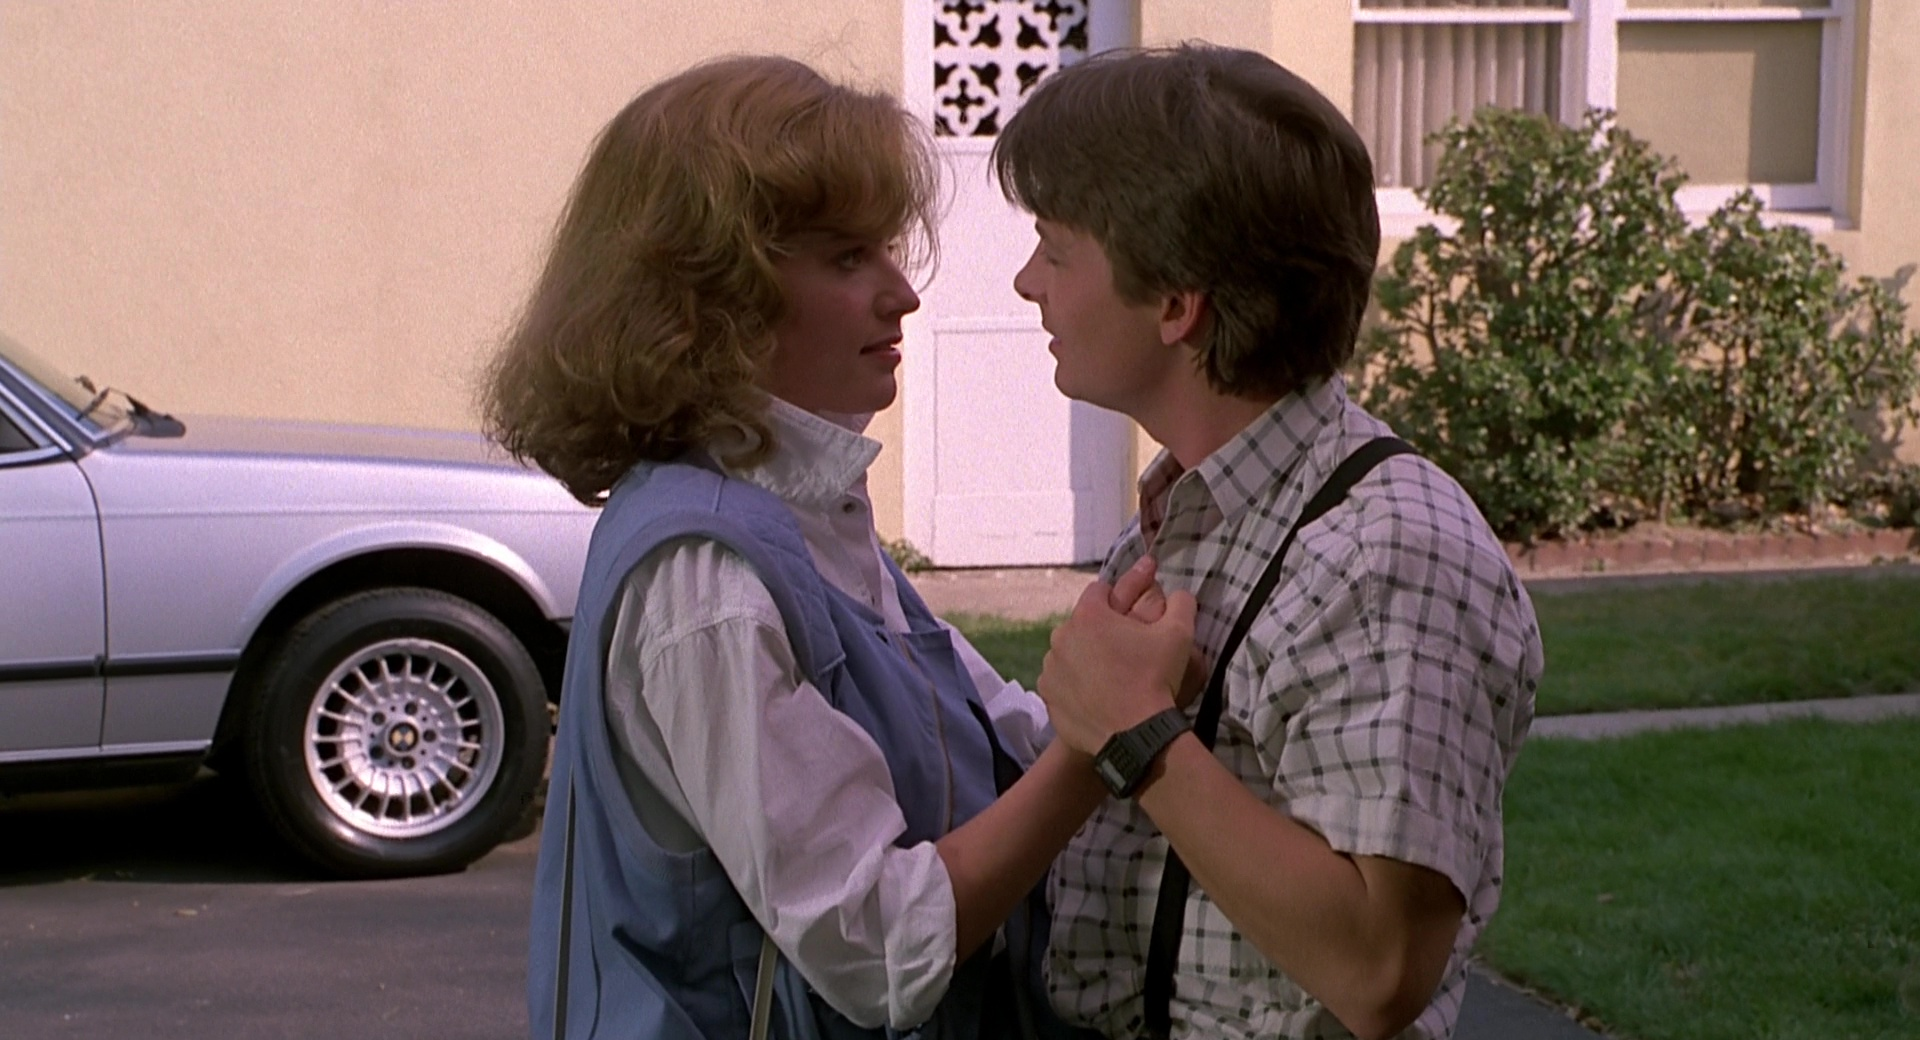 casio watch used by michael j fox marty mcfly in back to the future part 2 1989 movie. Black Bedroom Furniture Sets. Home Design Ideas